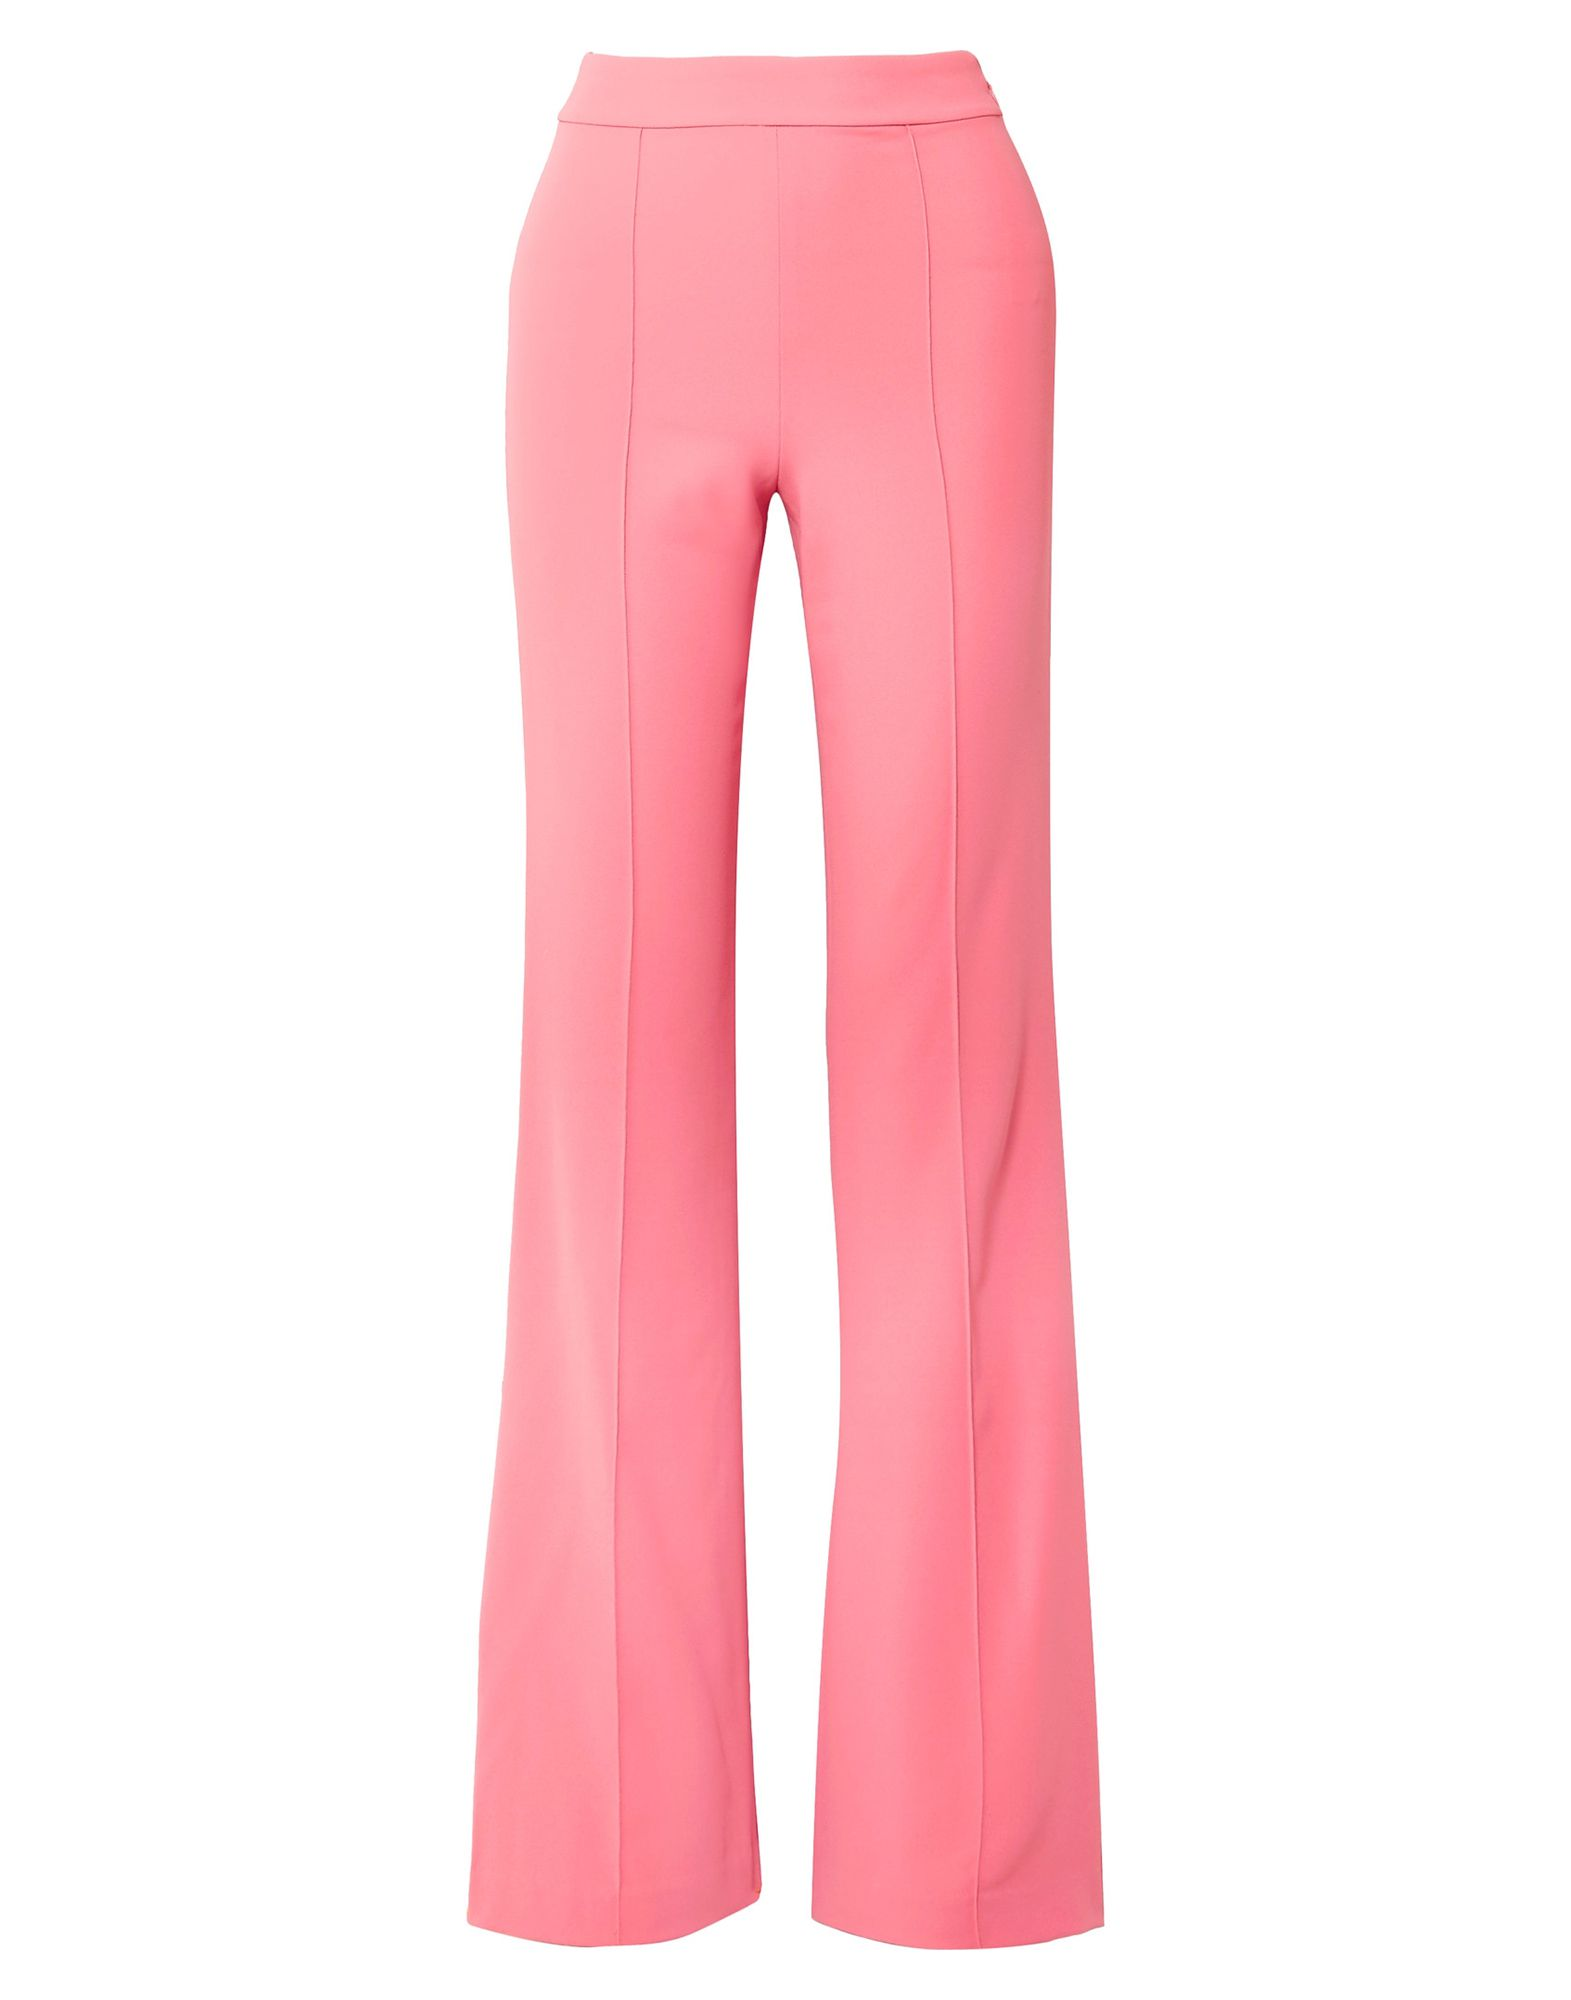 ALICE + OLIVIA Casual pants. crepe, no appliqués, basic solid color, high waisted, regular fit, flare & wide-leg, zip, no pockets. 100% Polyester